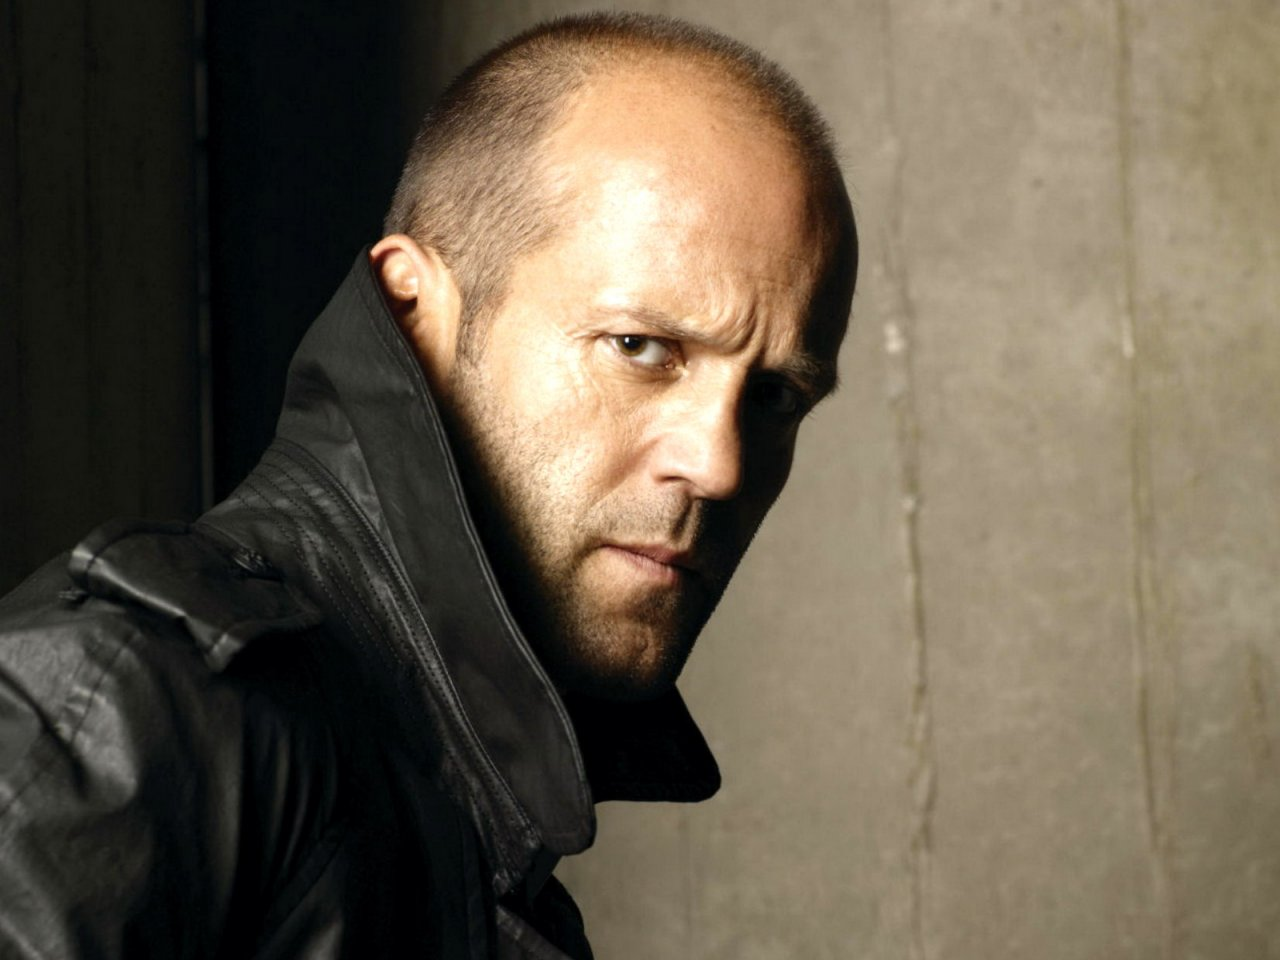 http://cdn.unleashthefanboy.com/wp-content/uploads/2013/12/jason-statham-superhero-movie.jpeg